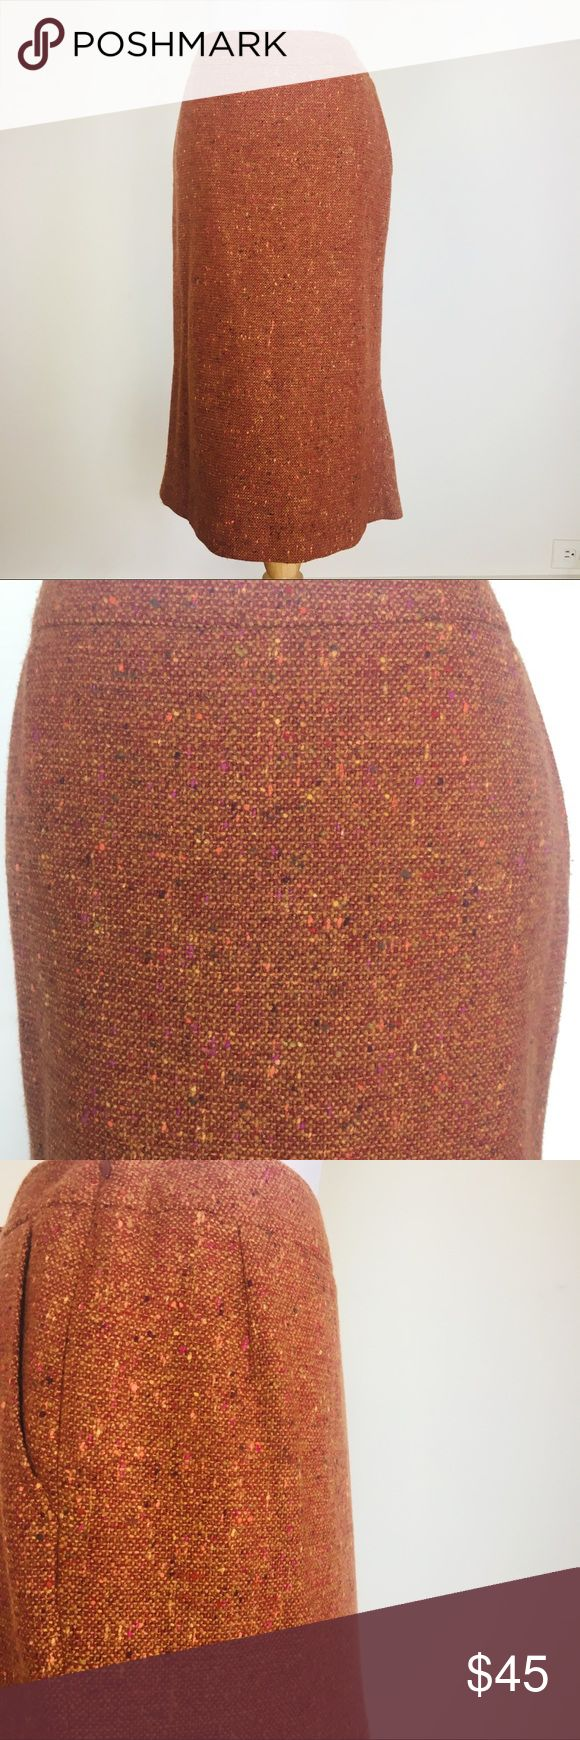 """Max Mara Virgin Wool Rust Orange Pencil Skirt Beautiful deep rust colored tweed virgin wool skirt by MaxMara. Flattering fit of pencil style with a mermaid hemline on the back panel. Hem falls a little below the knee to give a slimline silhouette. Definitely a timeless piece of your wardrobe. Excellent condition.  * 88% Virgin Wool / 12% Nylon * Fully lined * Side zip closure * Side pockets * Darted back and mermaid hem on back on skirt * US 8 / I 42 * Made in italy  * 14.75"""" Waist * 19.25""""…"""